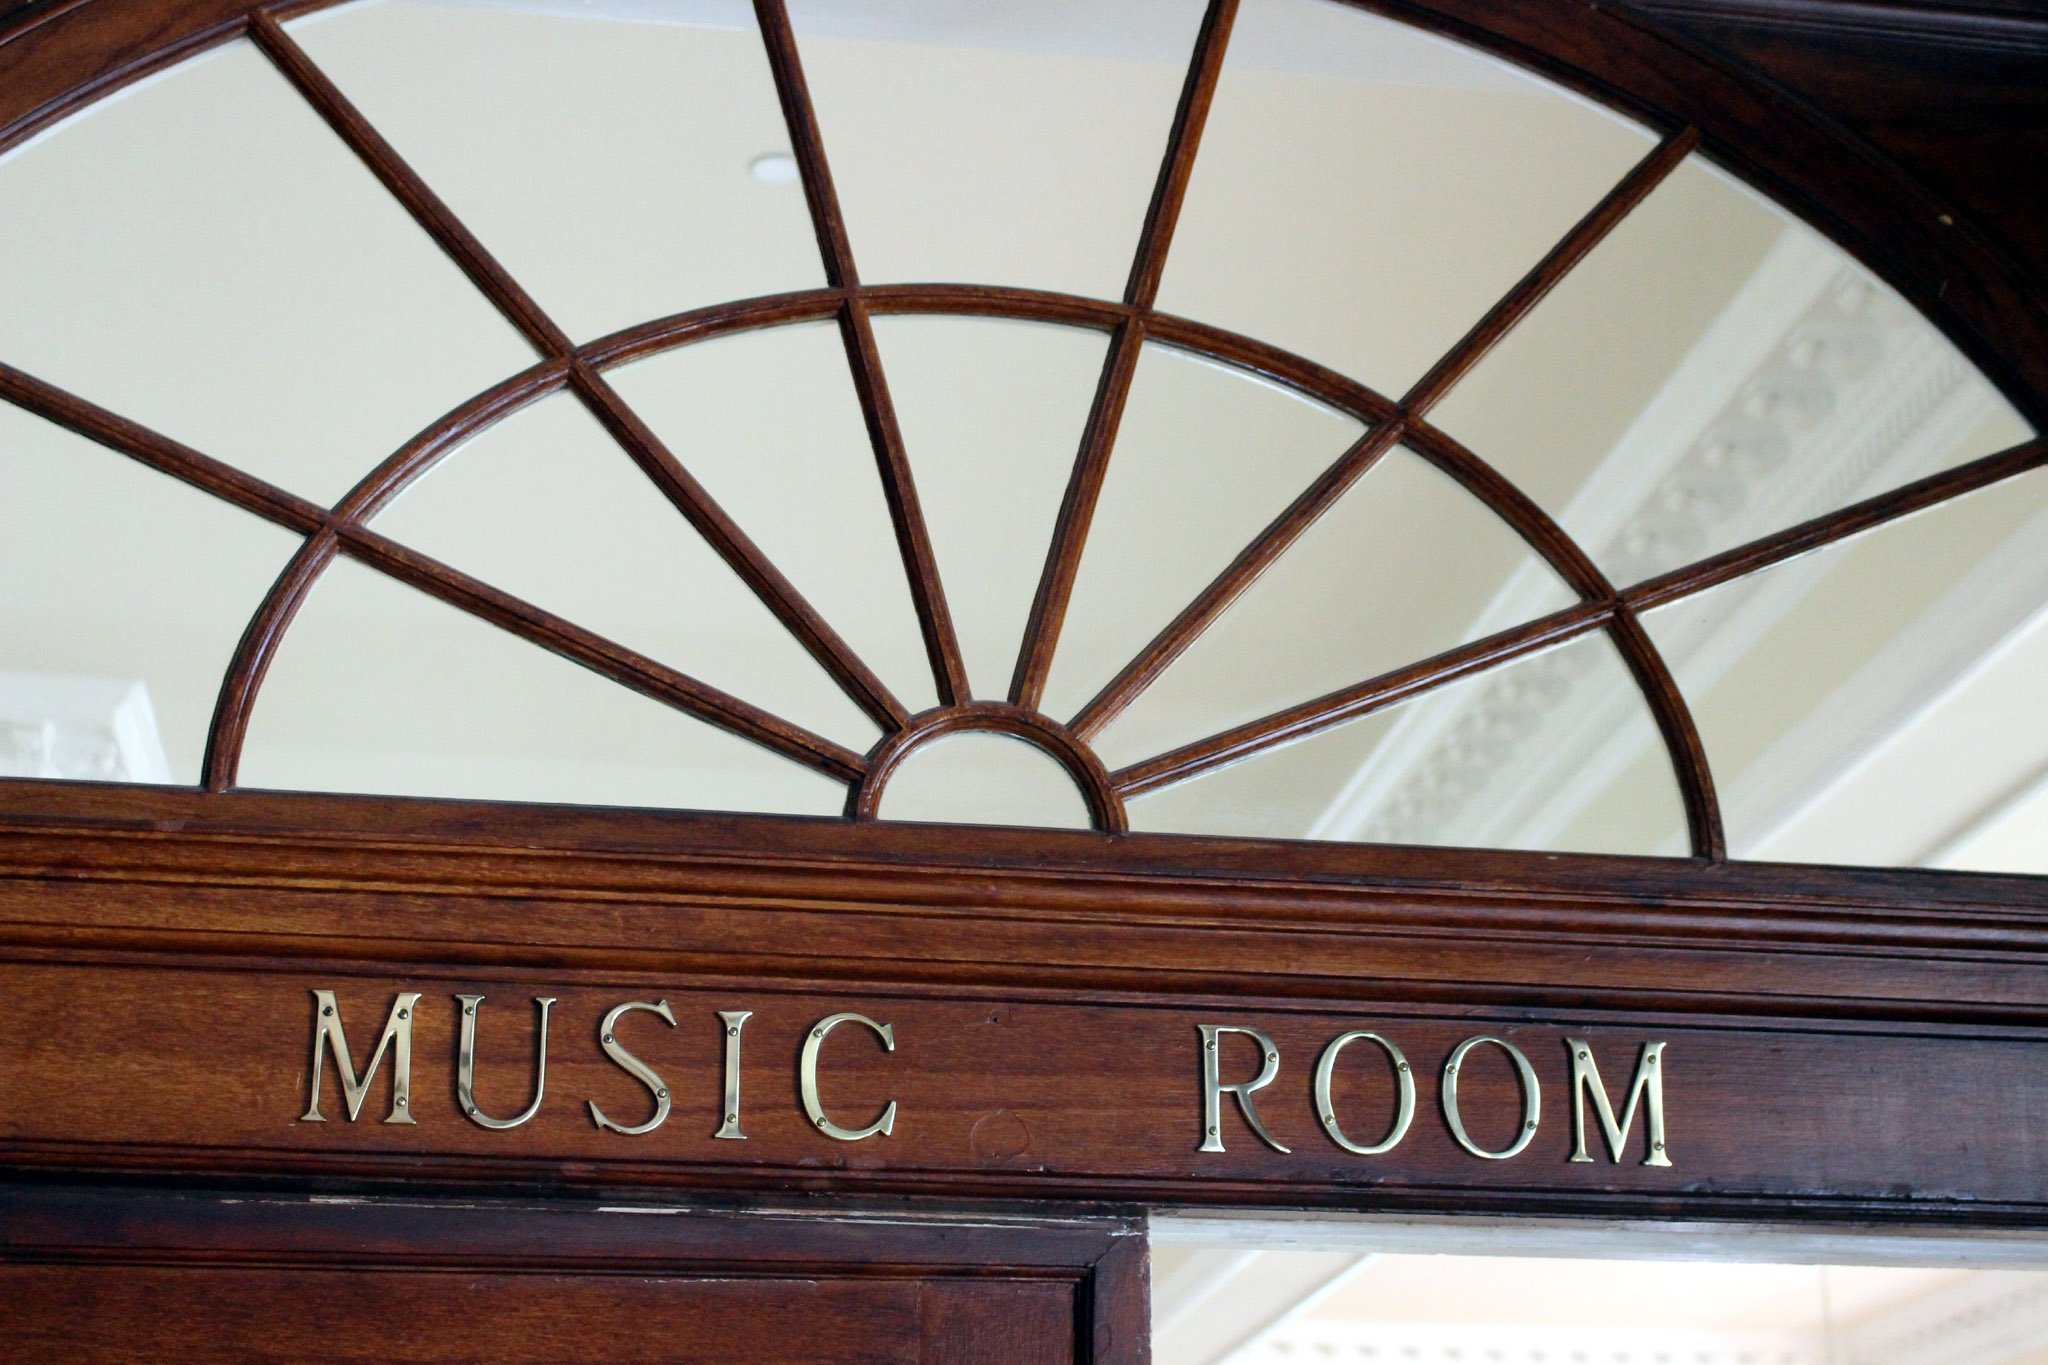 The Stanley Hotel Music Room